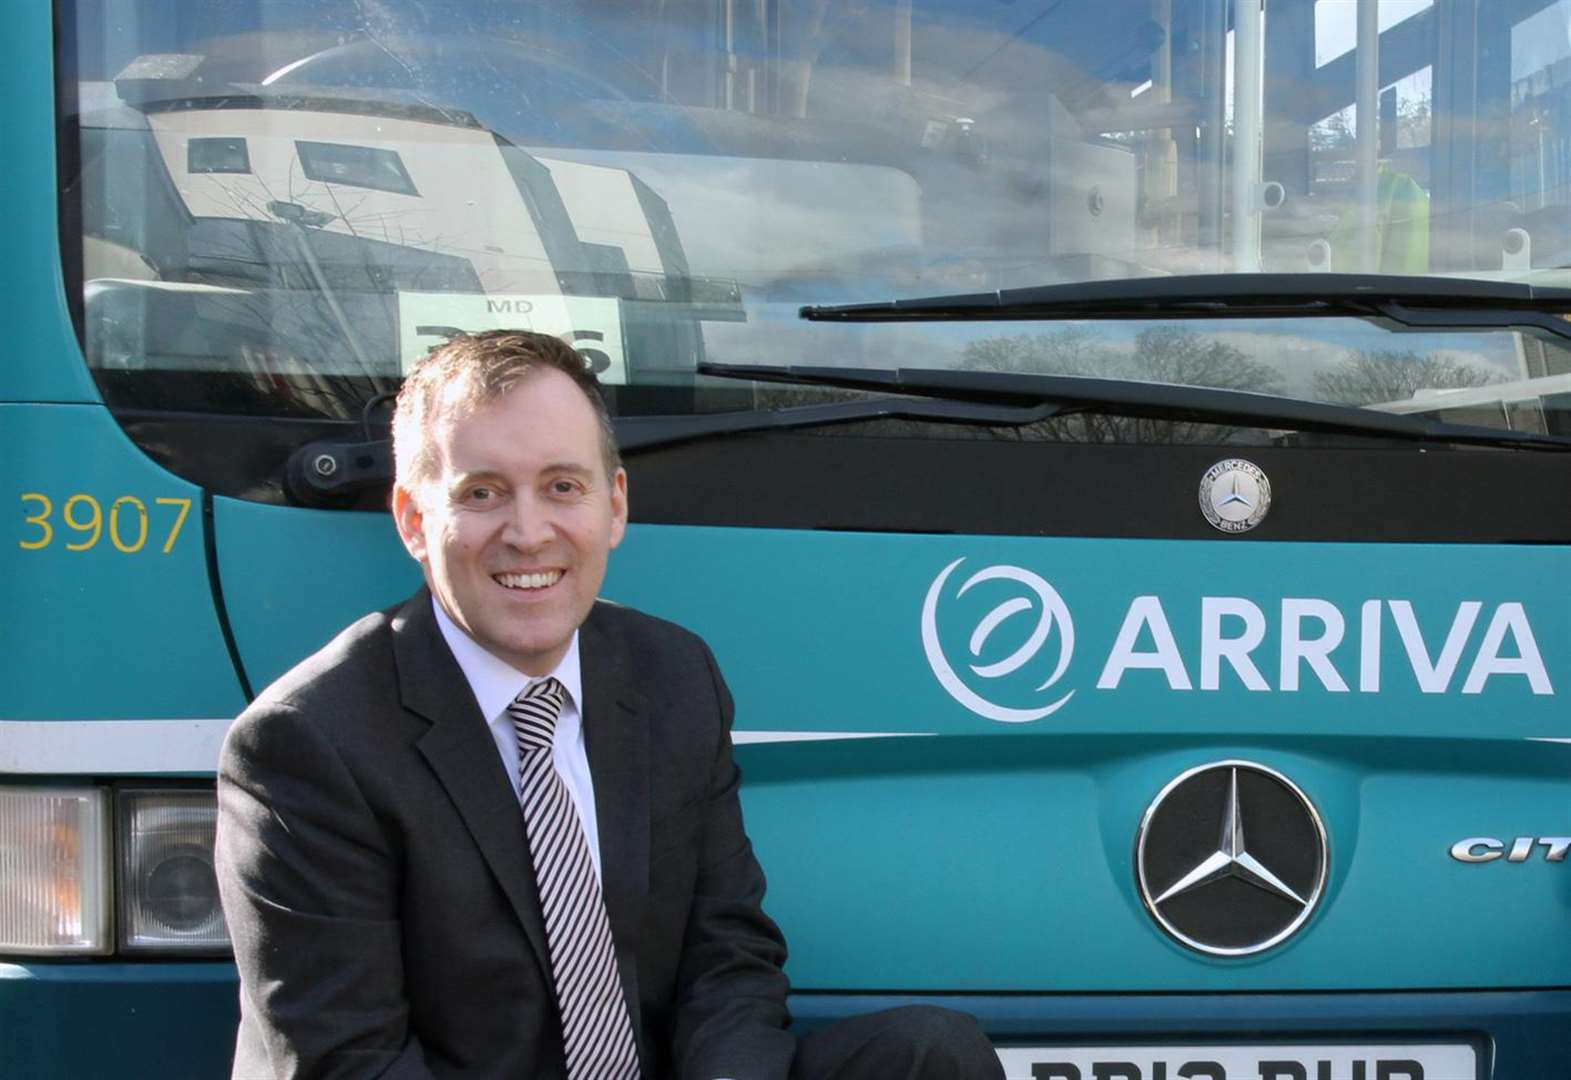 Bus boss backs tram